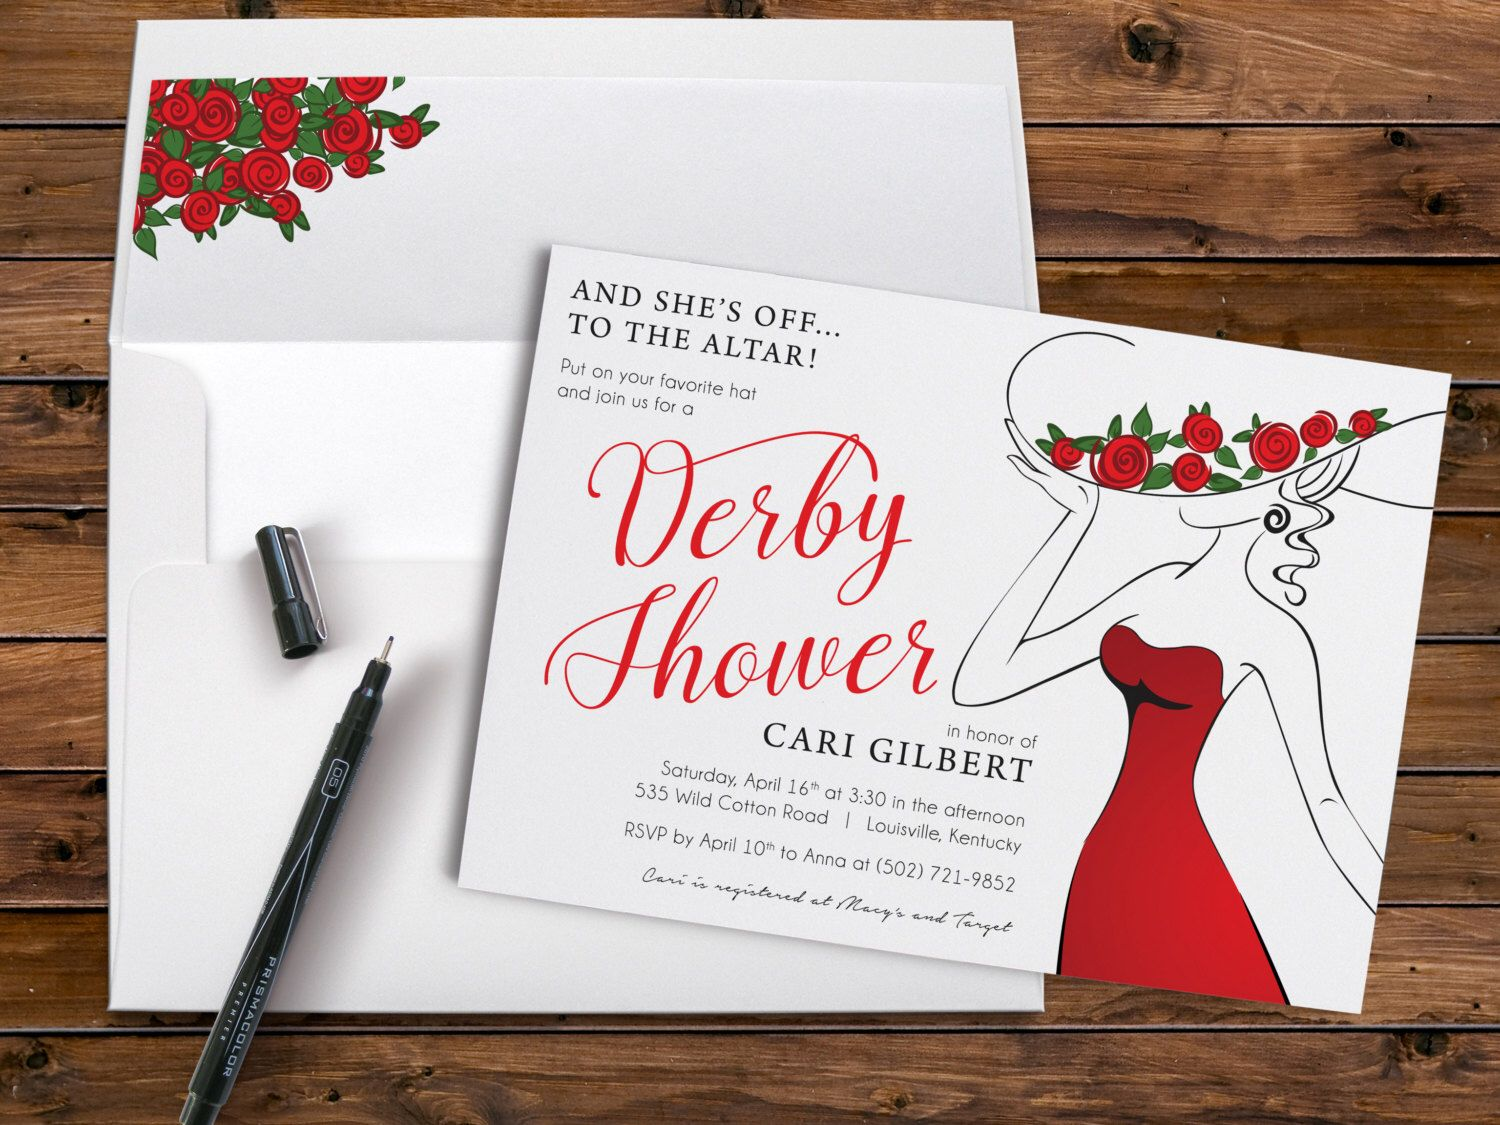 Derby Shower Invitation with Red Roses and Large Hat for a Bridal ...